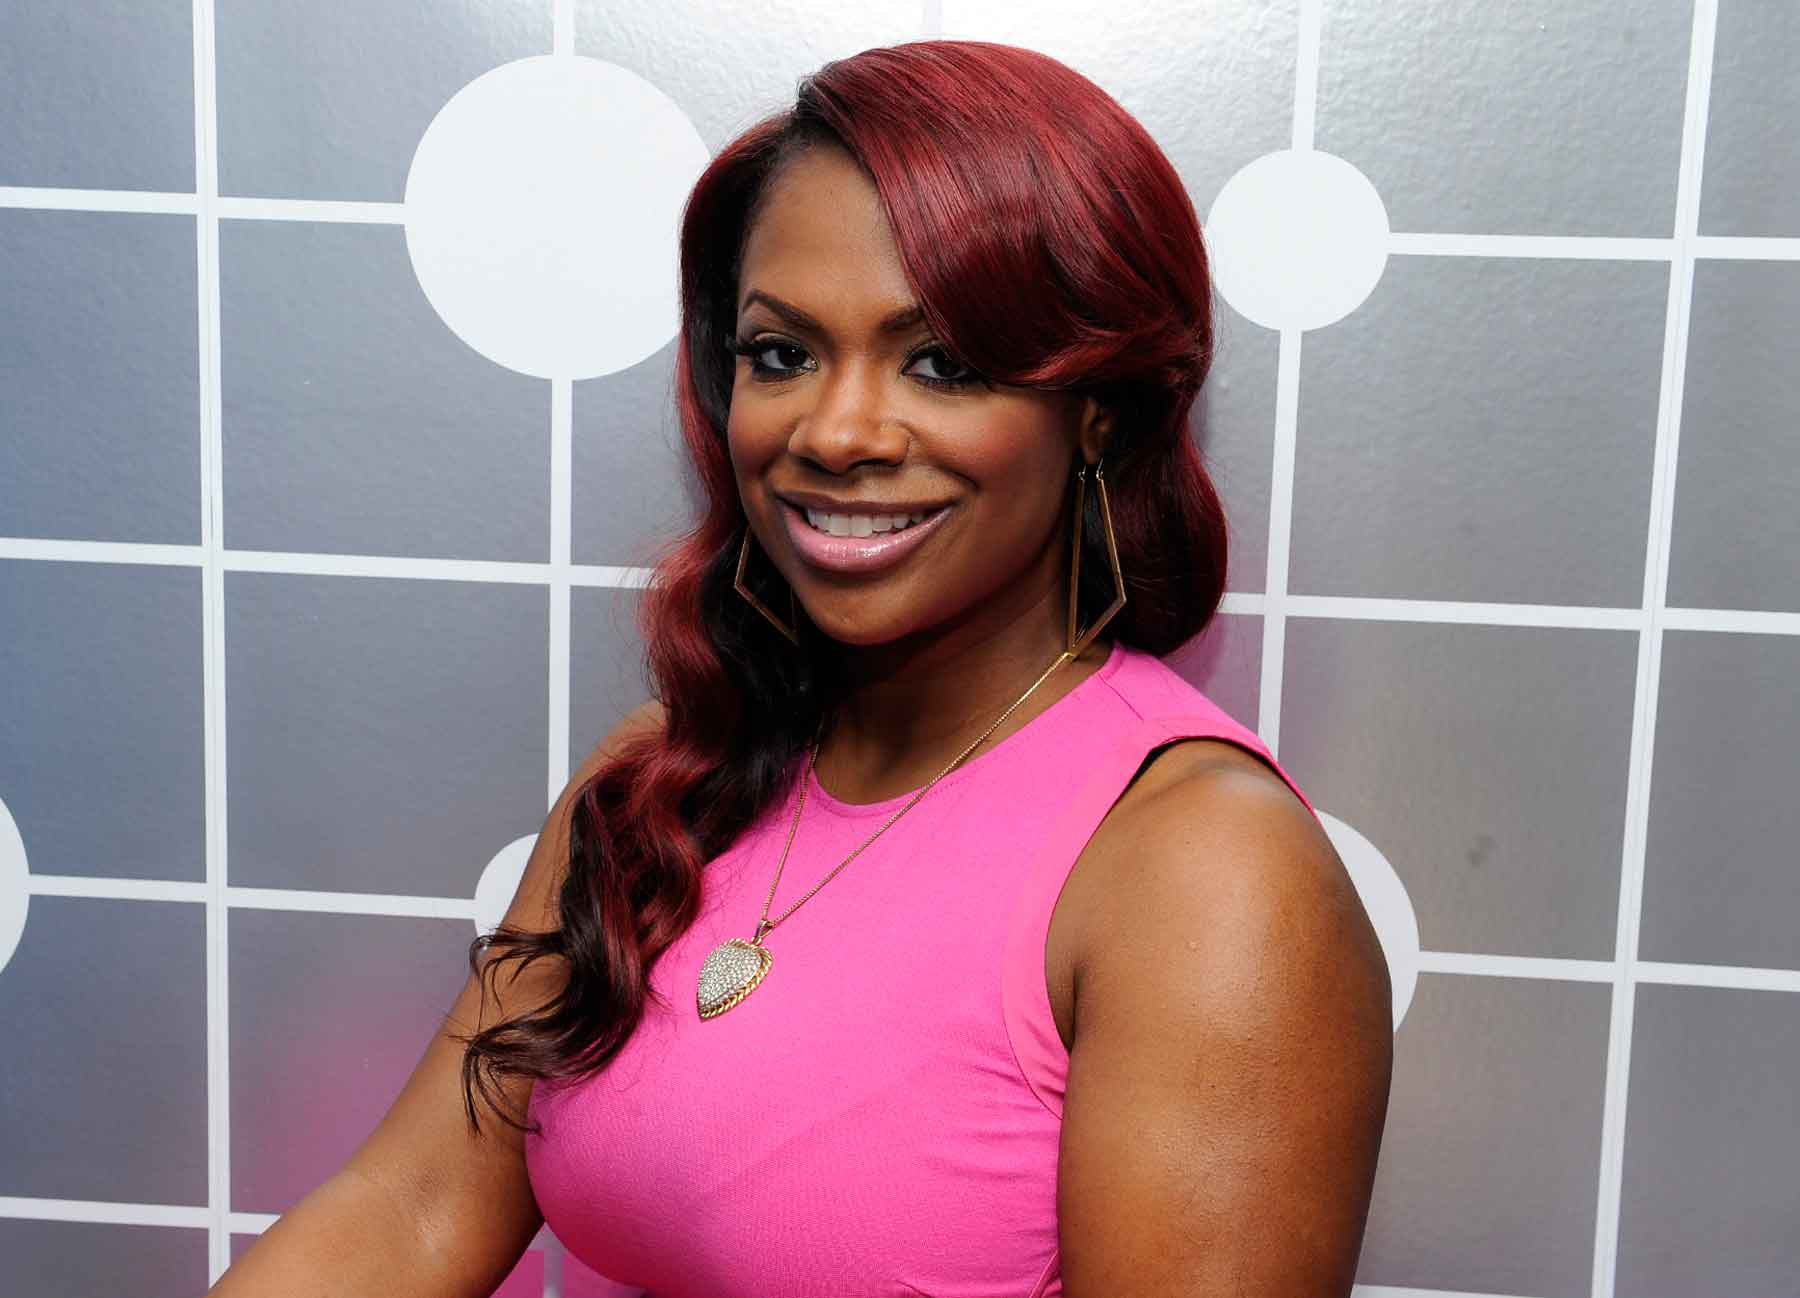 """kandi-burruss-shows-off-her-curvy-figure-in-this-two-piece-outfit-from-tags-boutique"""